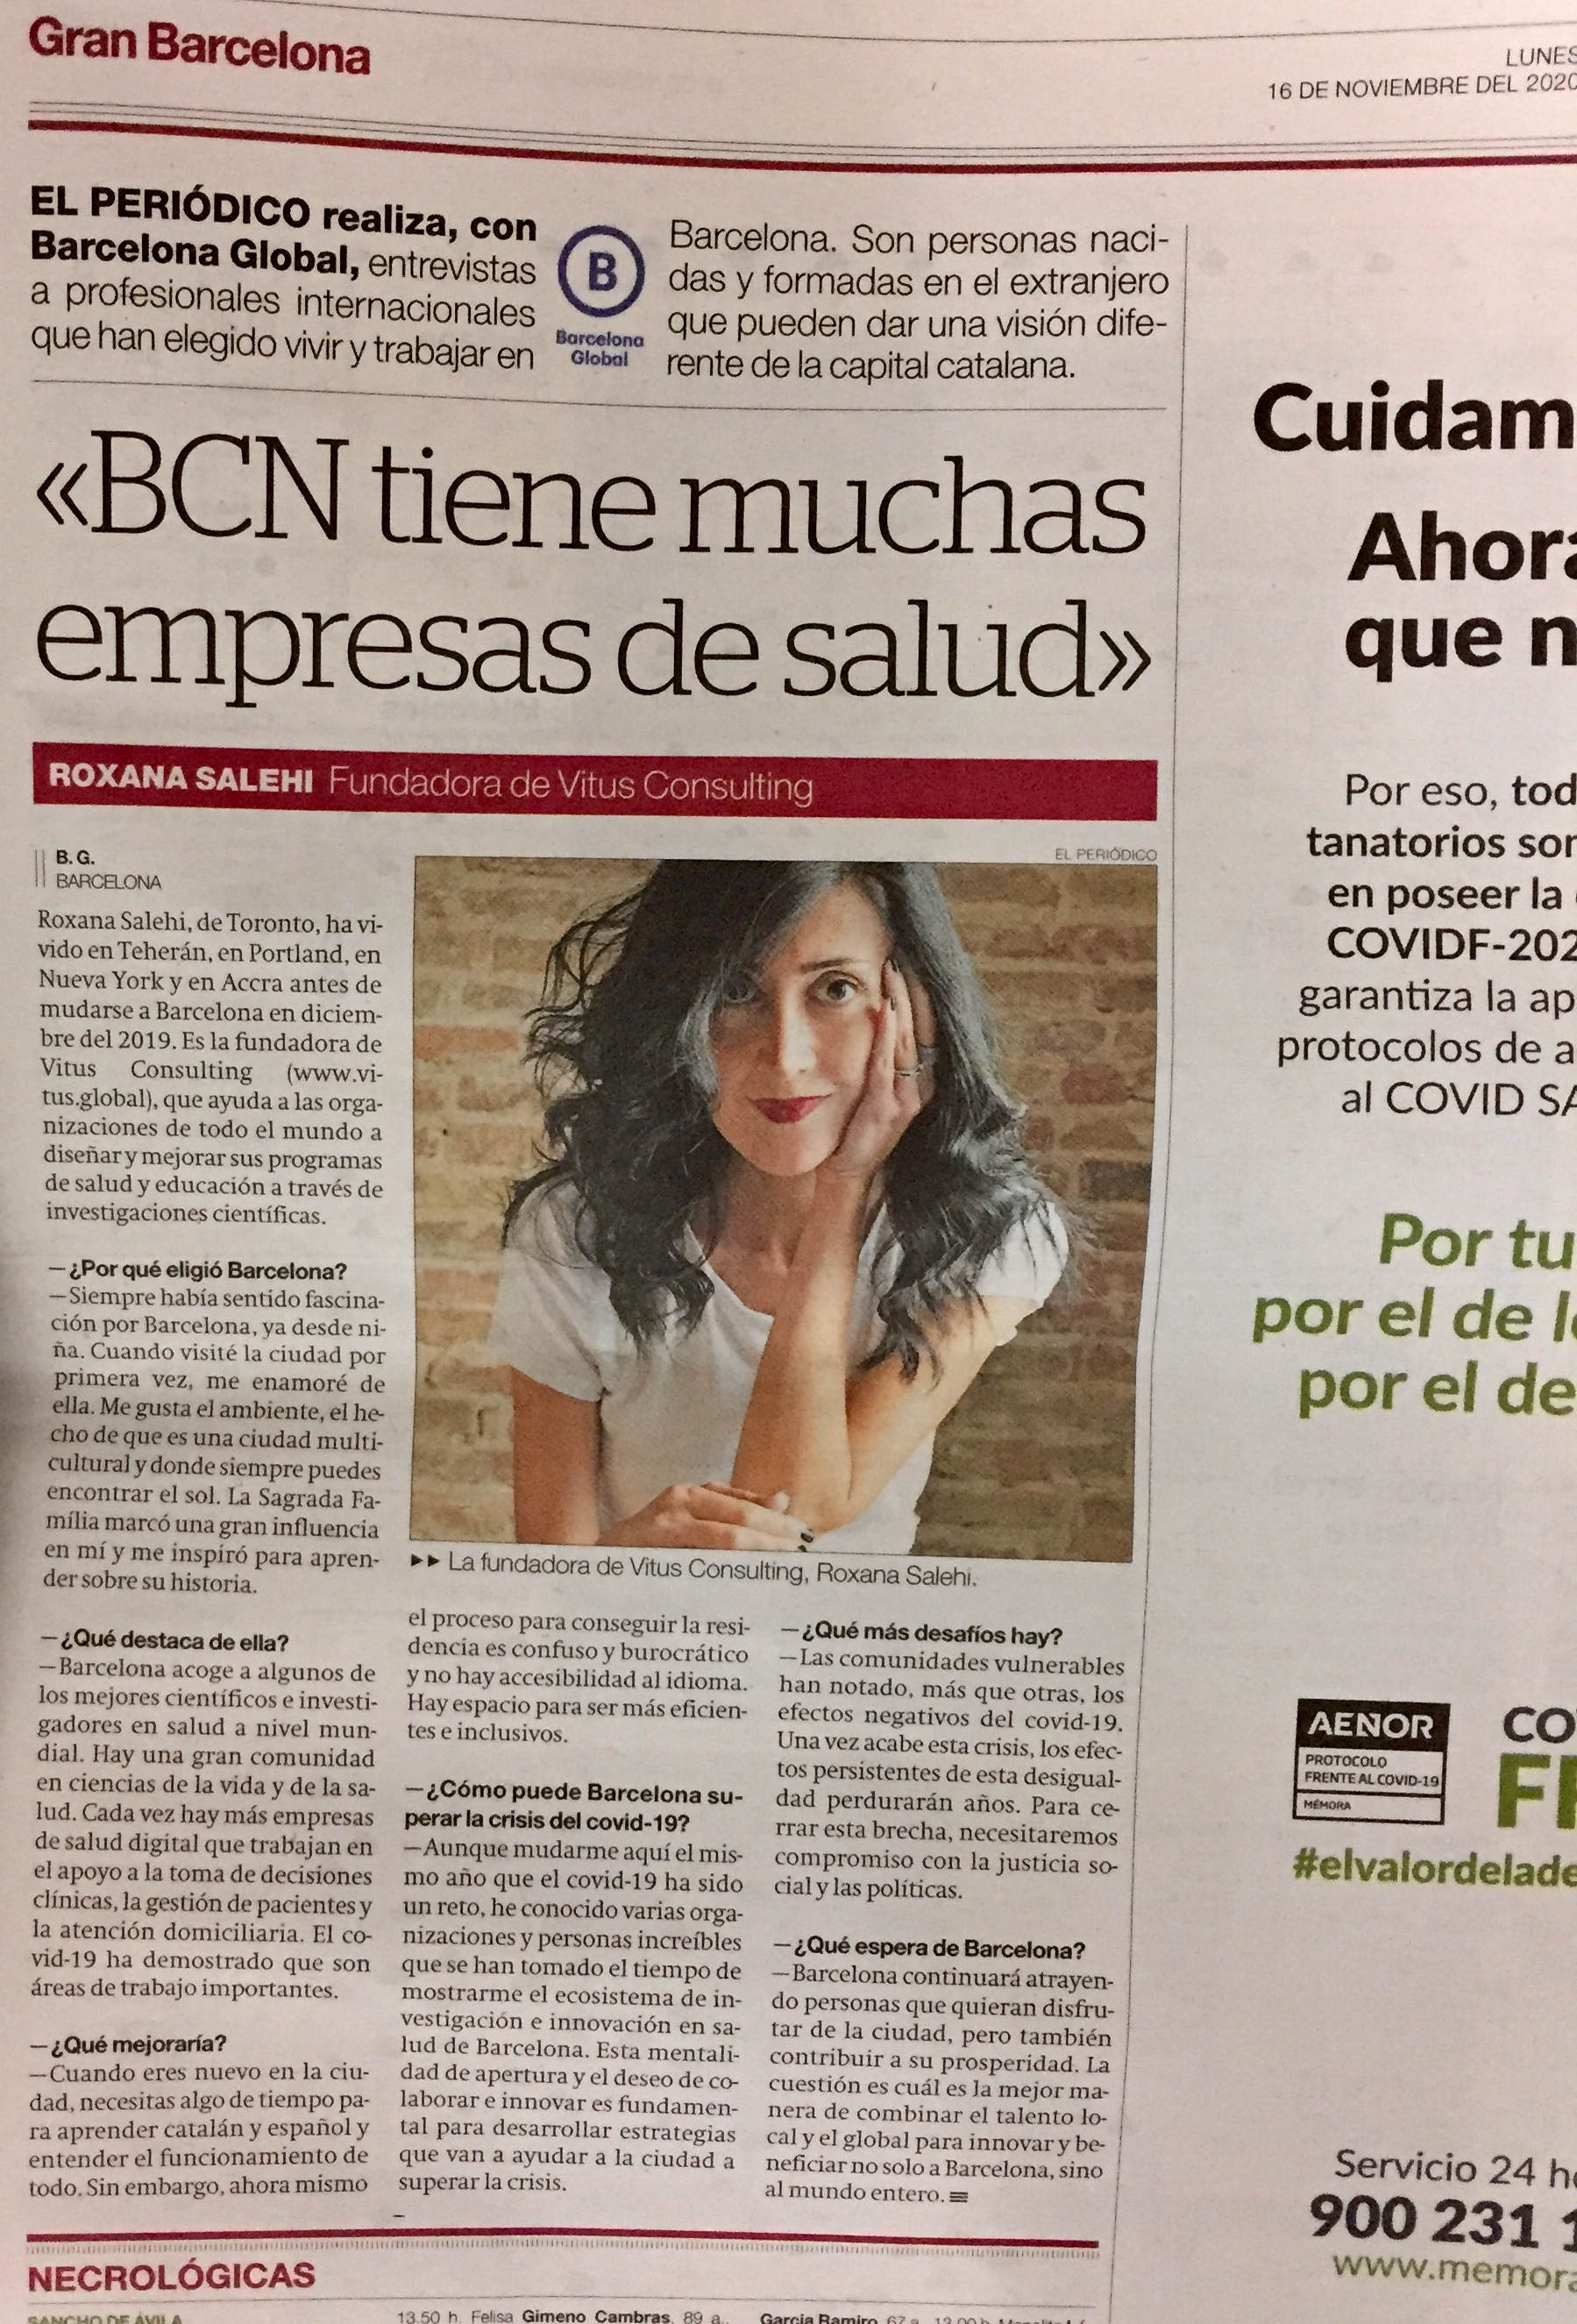 El Periodico Interview